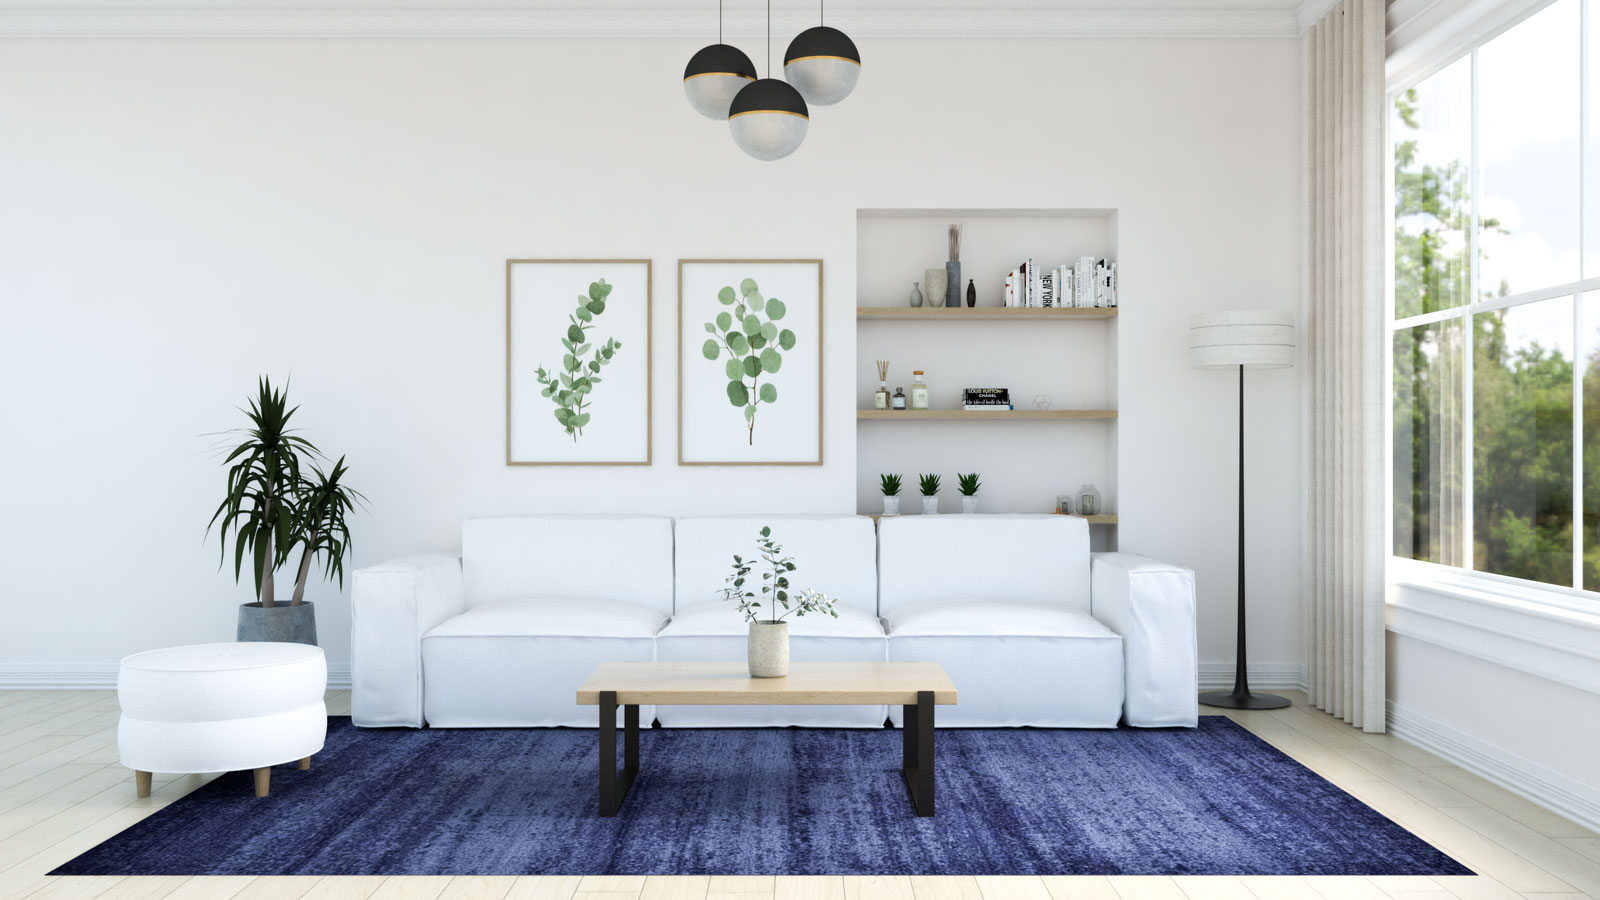 Living room with navy blue rug and white couch